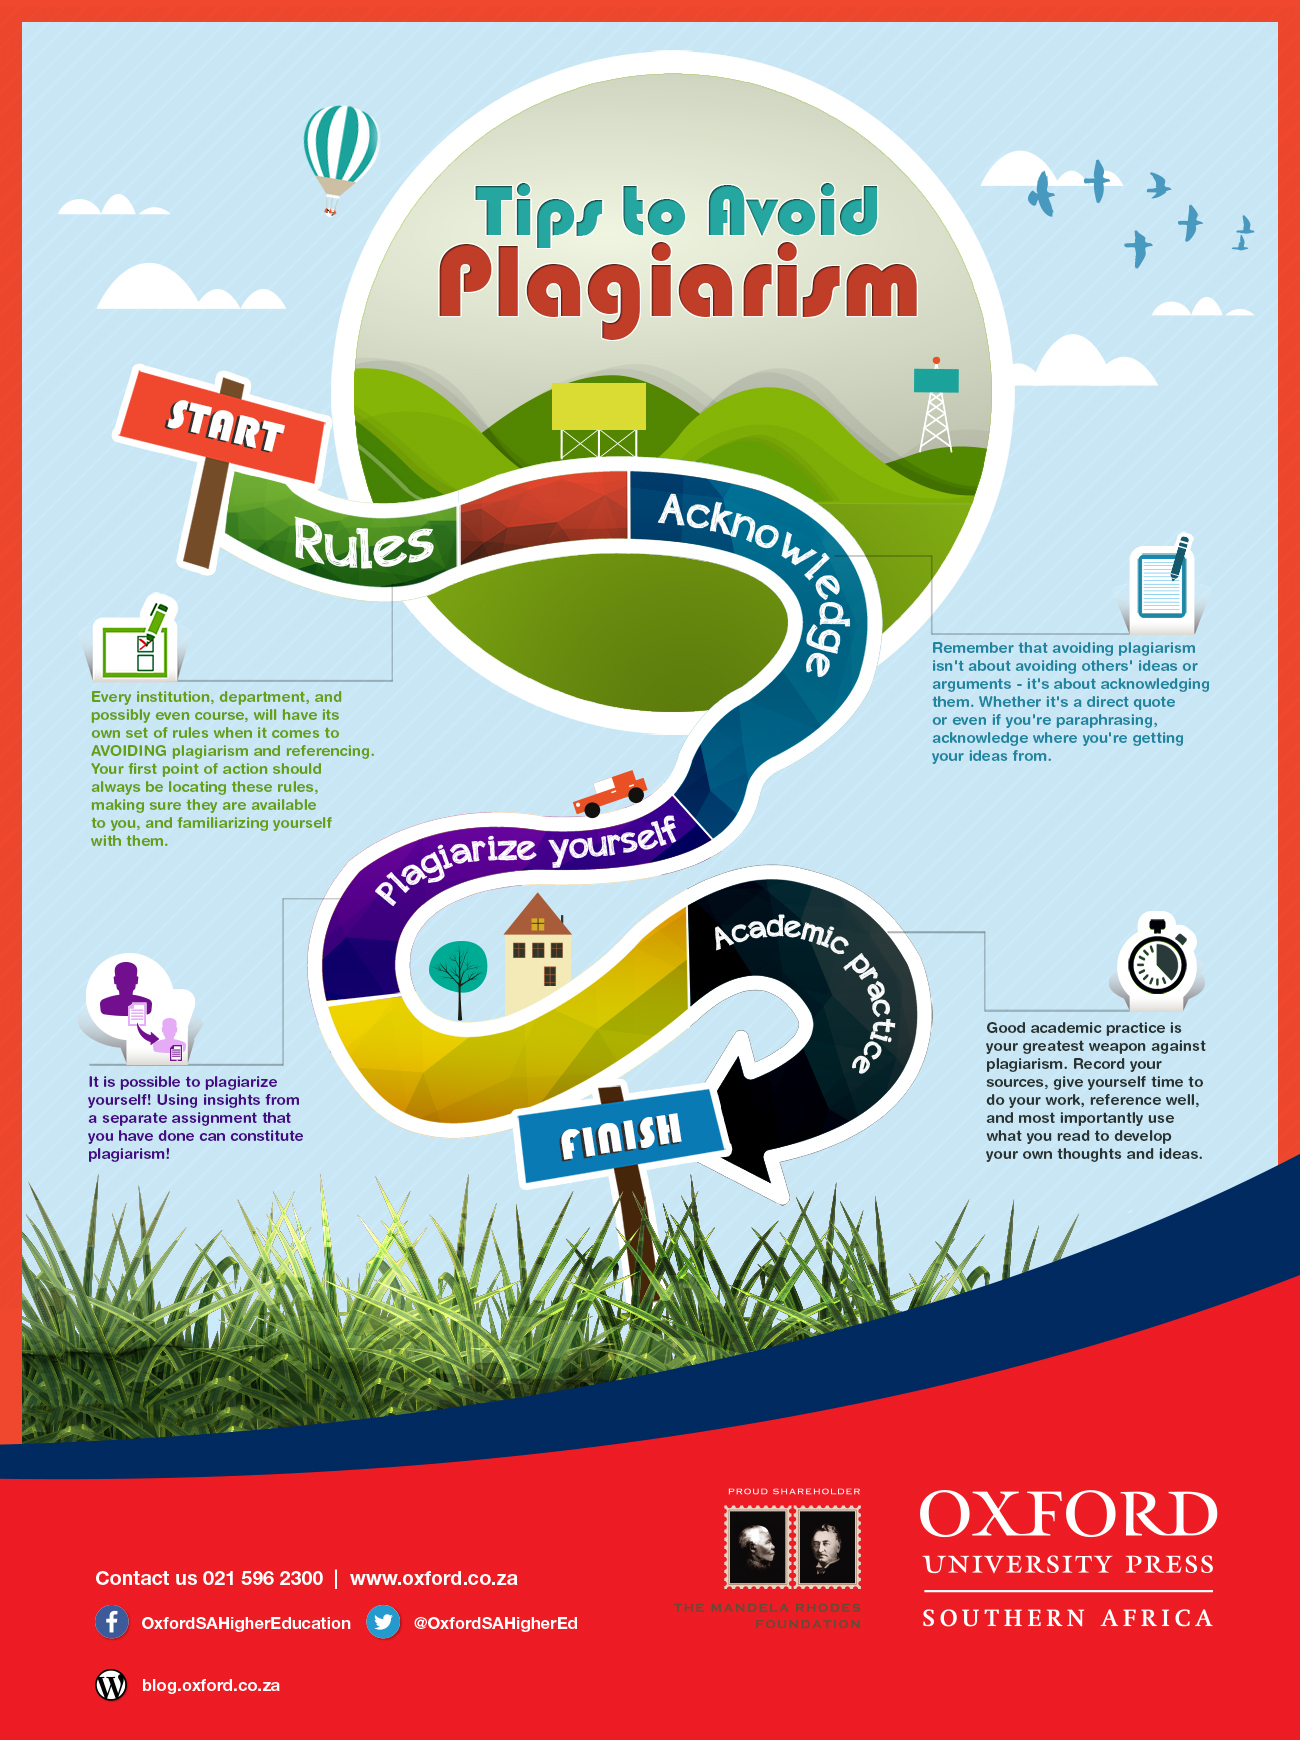 HED_DIG_9989_15_Tips-to-Avoid-Plagiarism